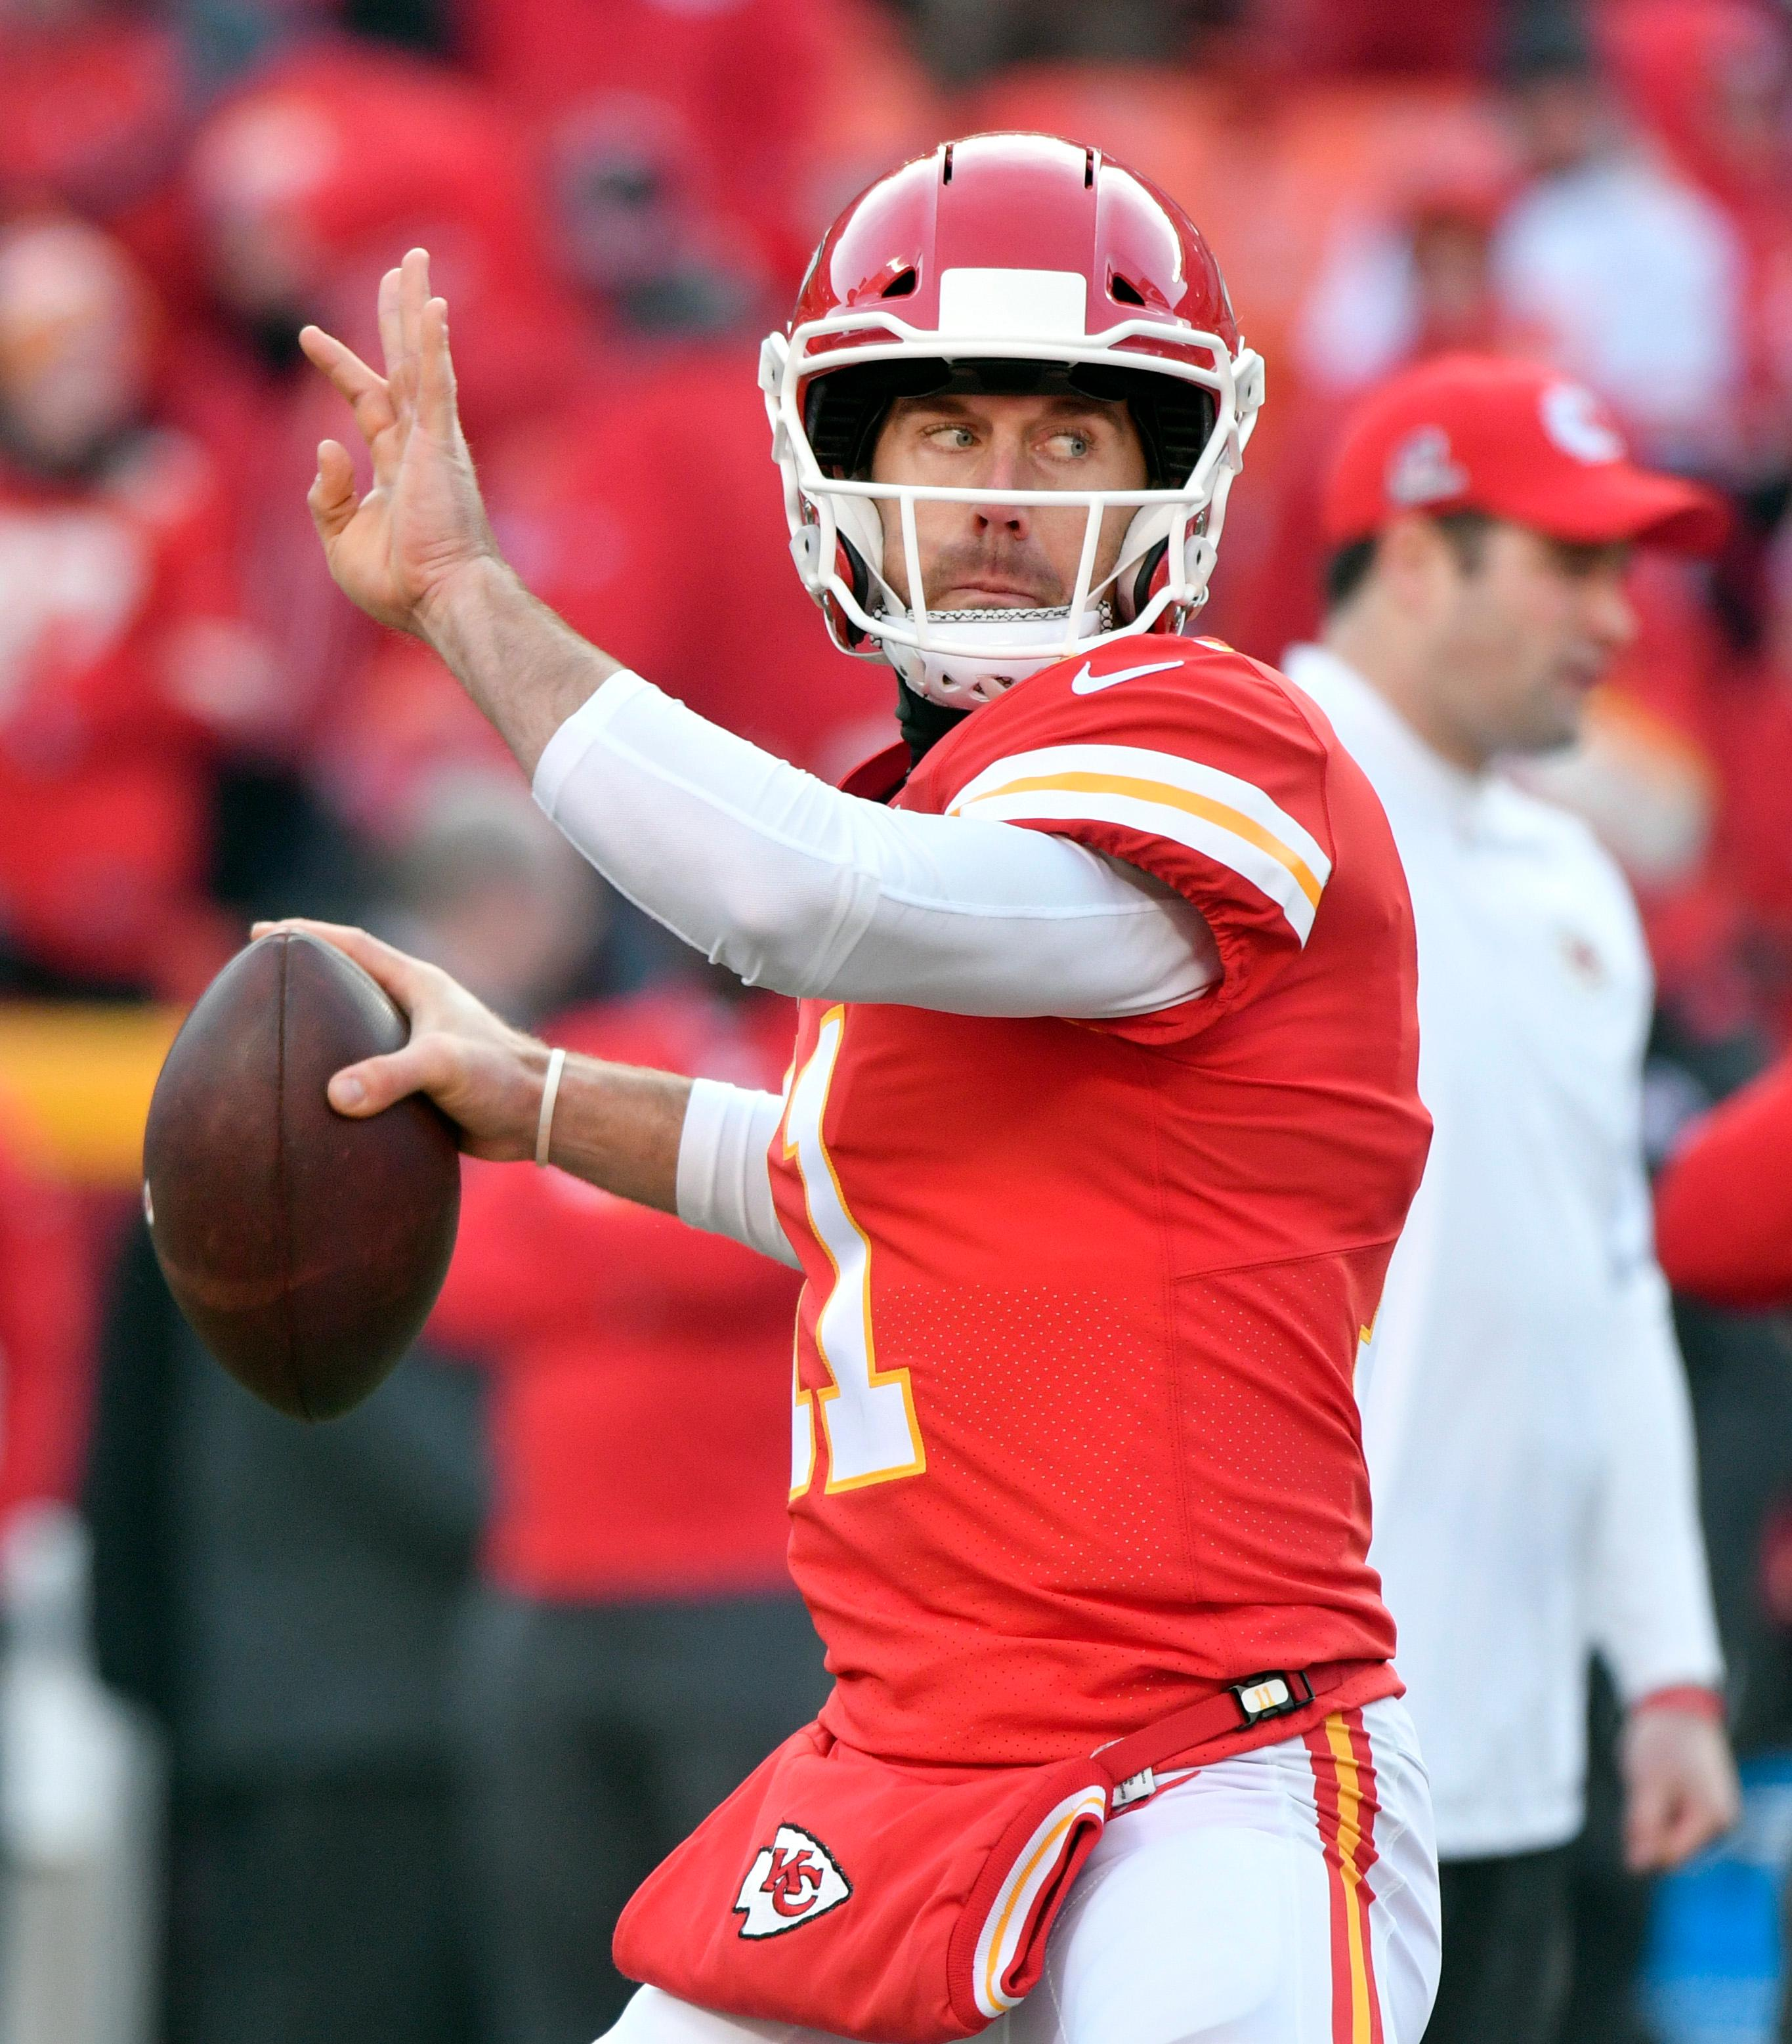 Kansas City Chiefs quarterback Alex Smith (11) warms up before an NFL wild-card playoff football game against the Tennessee Titans, in Kansas City, Mo., Saturday, Jan. 6, 2018. (AP Photo/Ed Zurga)